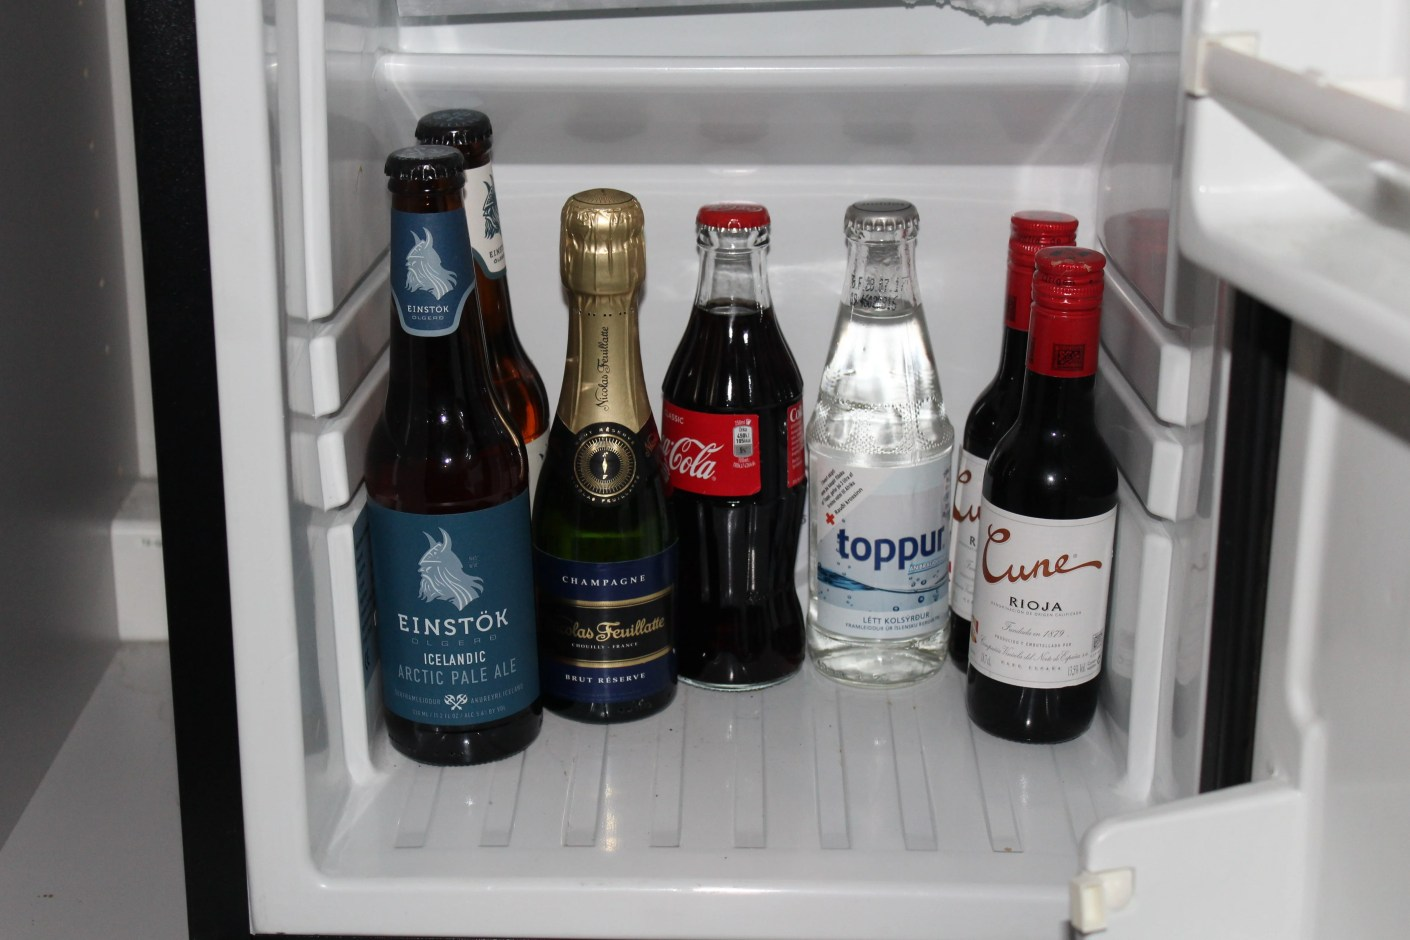 The minibar contained no snacks, just a small assortment of beverages without a price sheet.